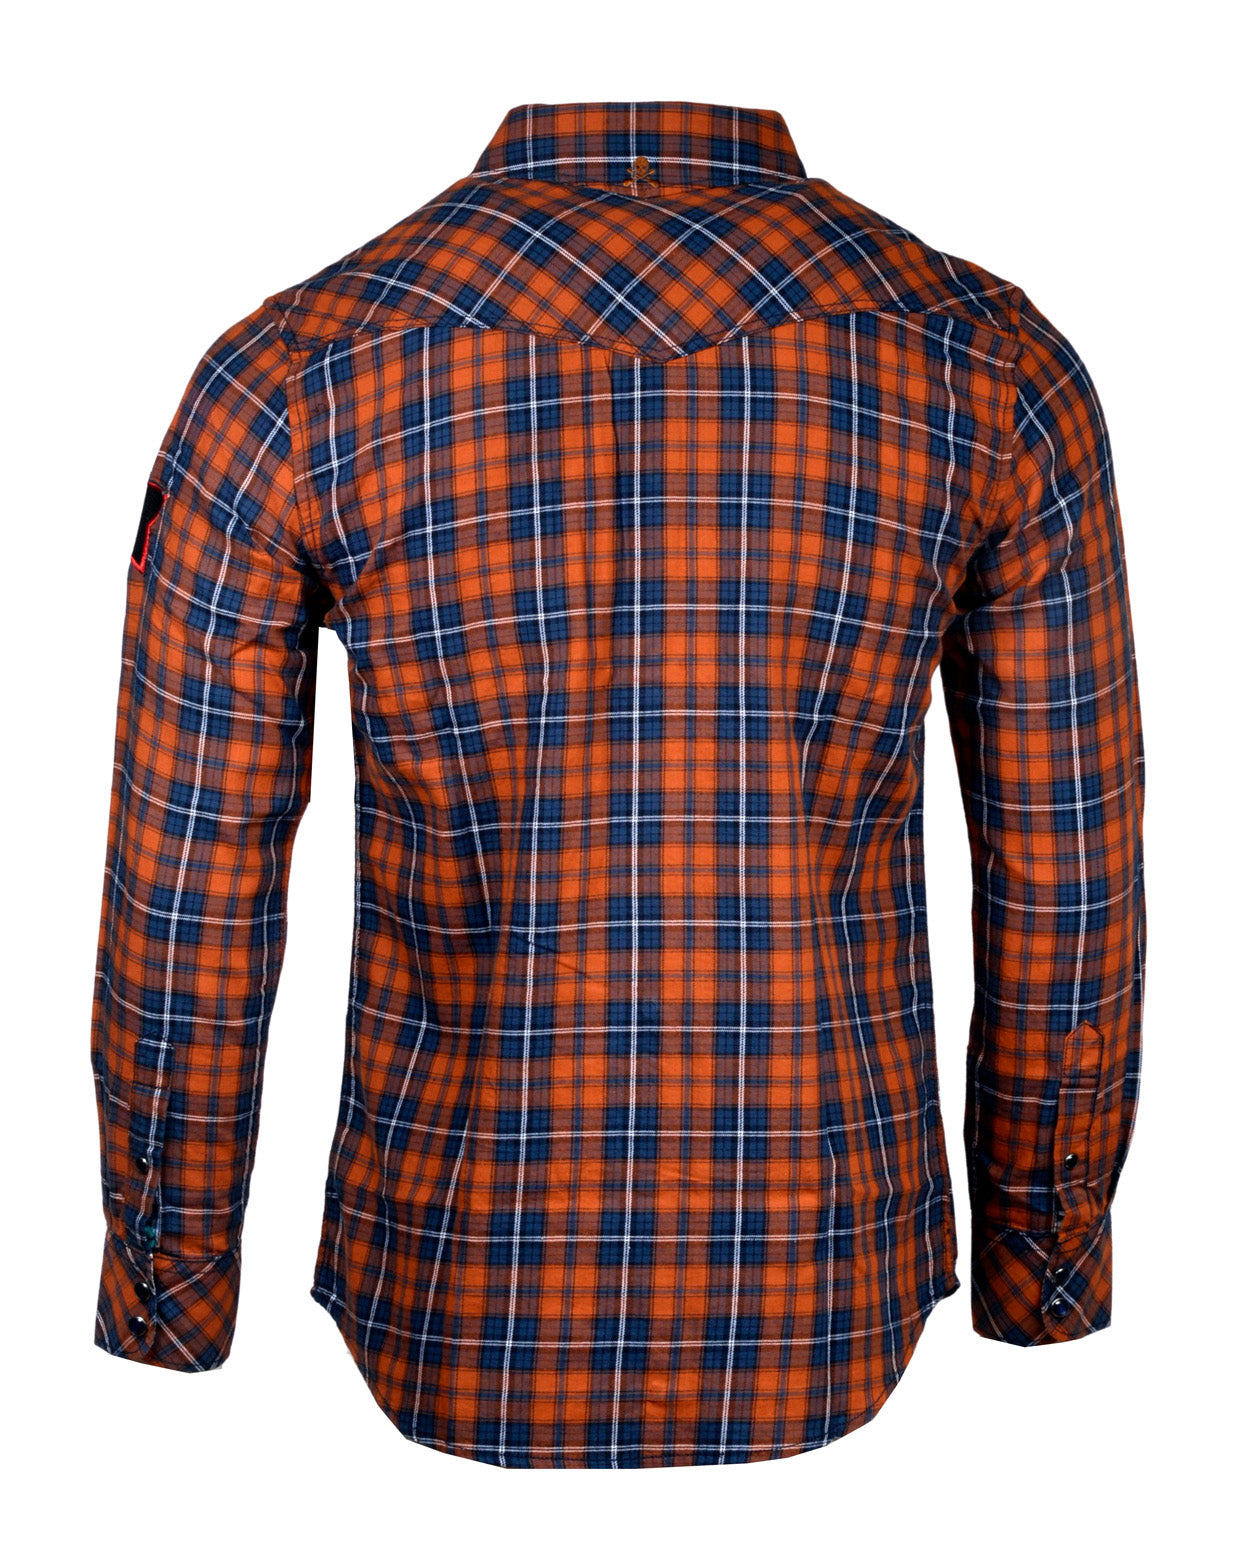 Men's Casual Fashion Button Up Plaid Shirt - Orange  Crush by Rock Roll n Soul12